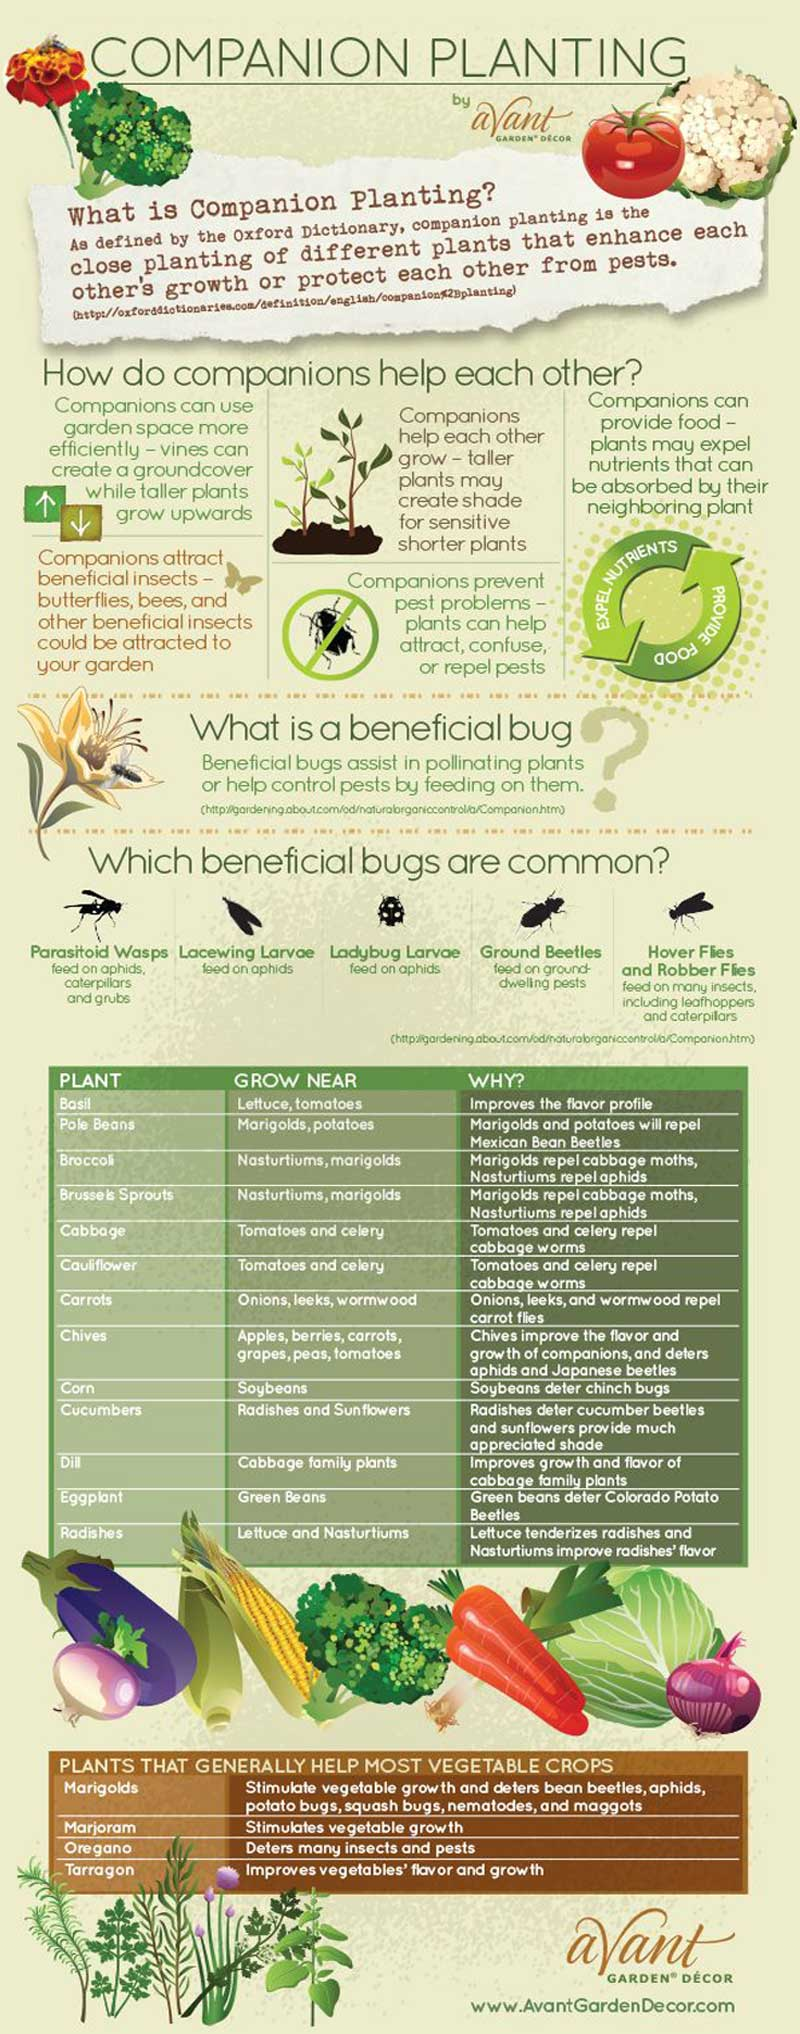 Large-scale Gardening, Companion Planting, Plant Spacing